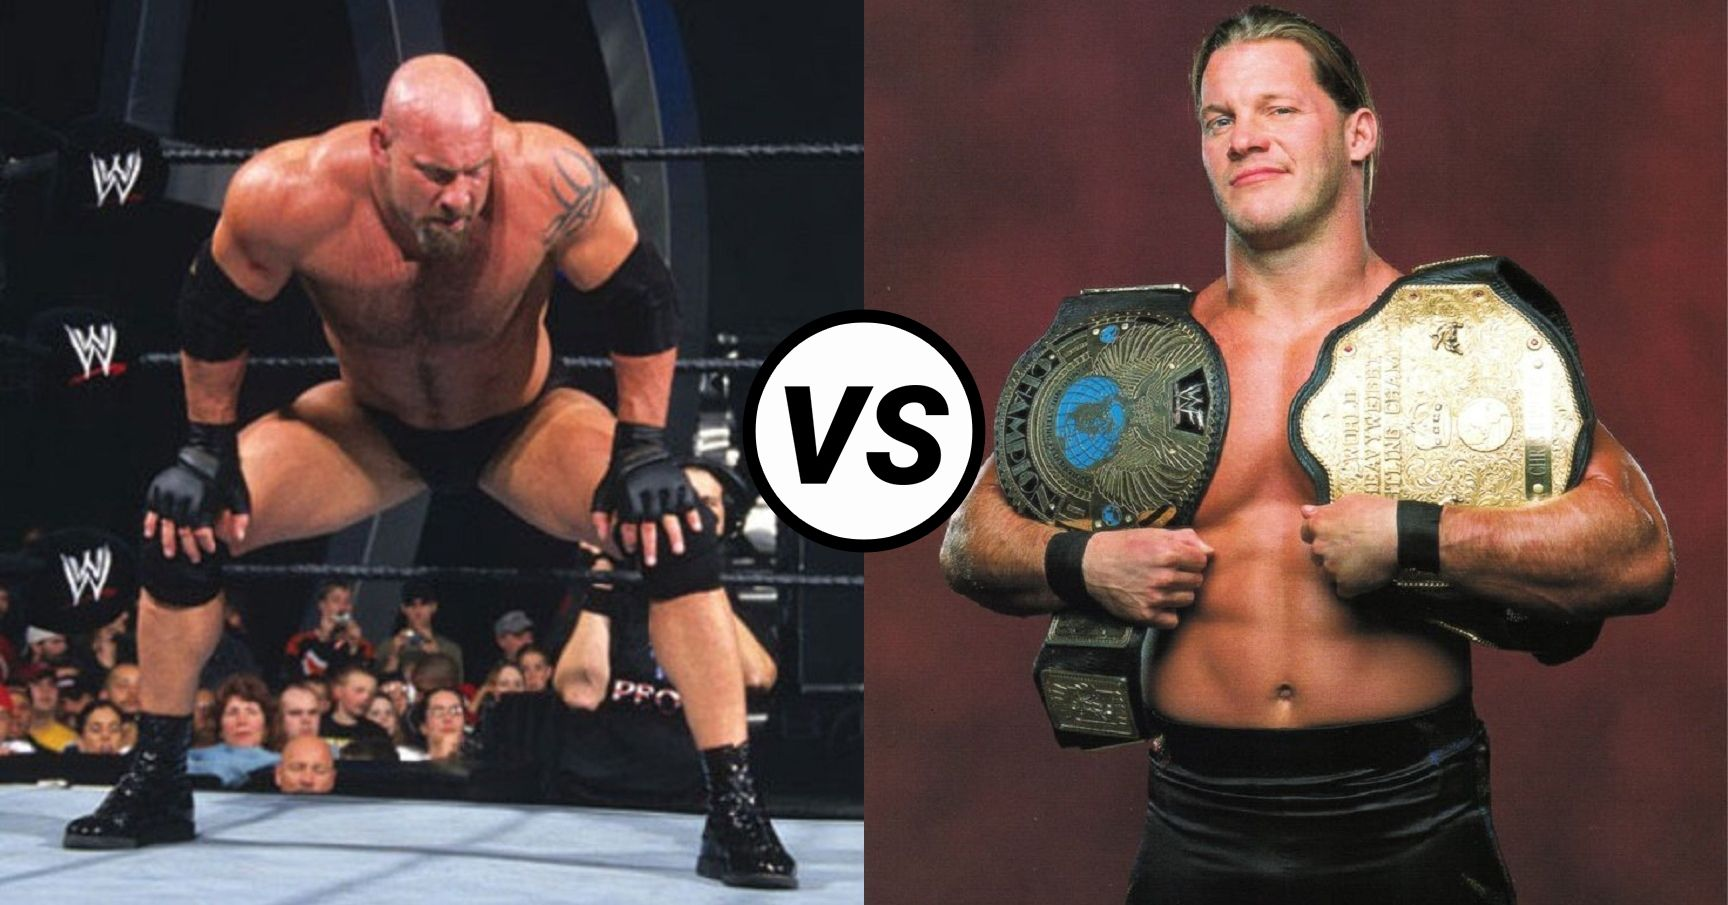 Top 10 Real Backstage Wrestling Fights With An Unlikely Winner